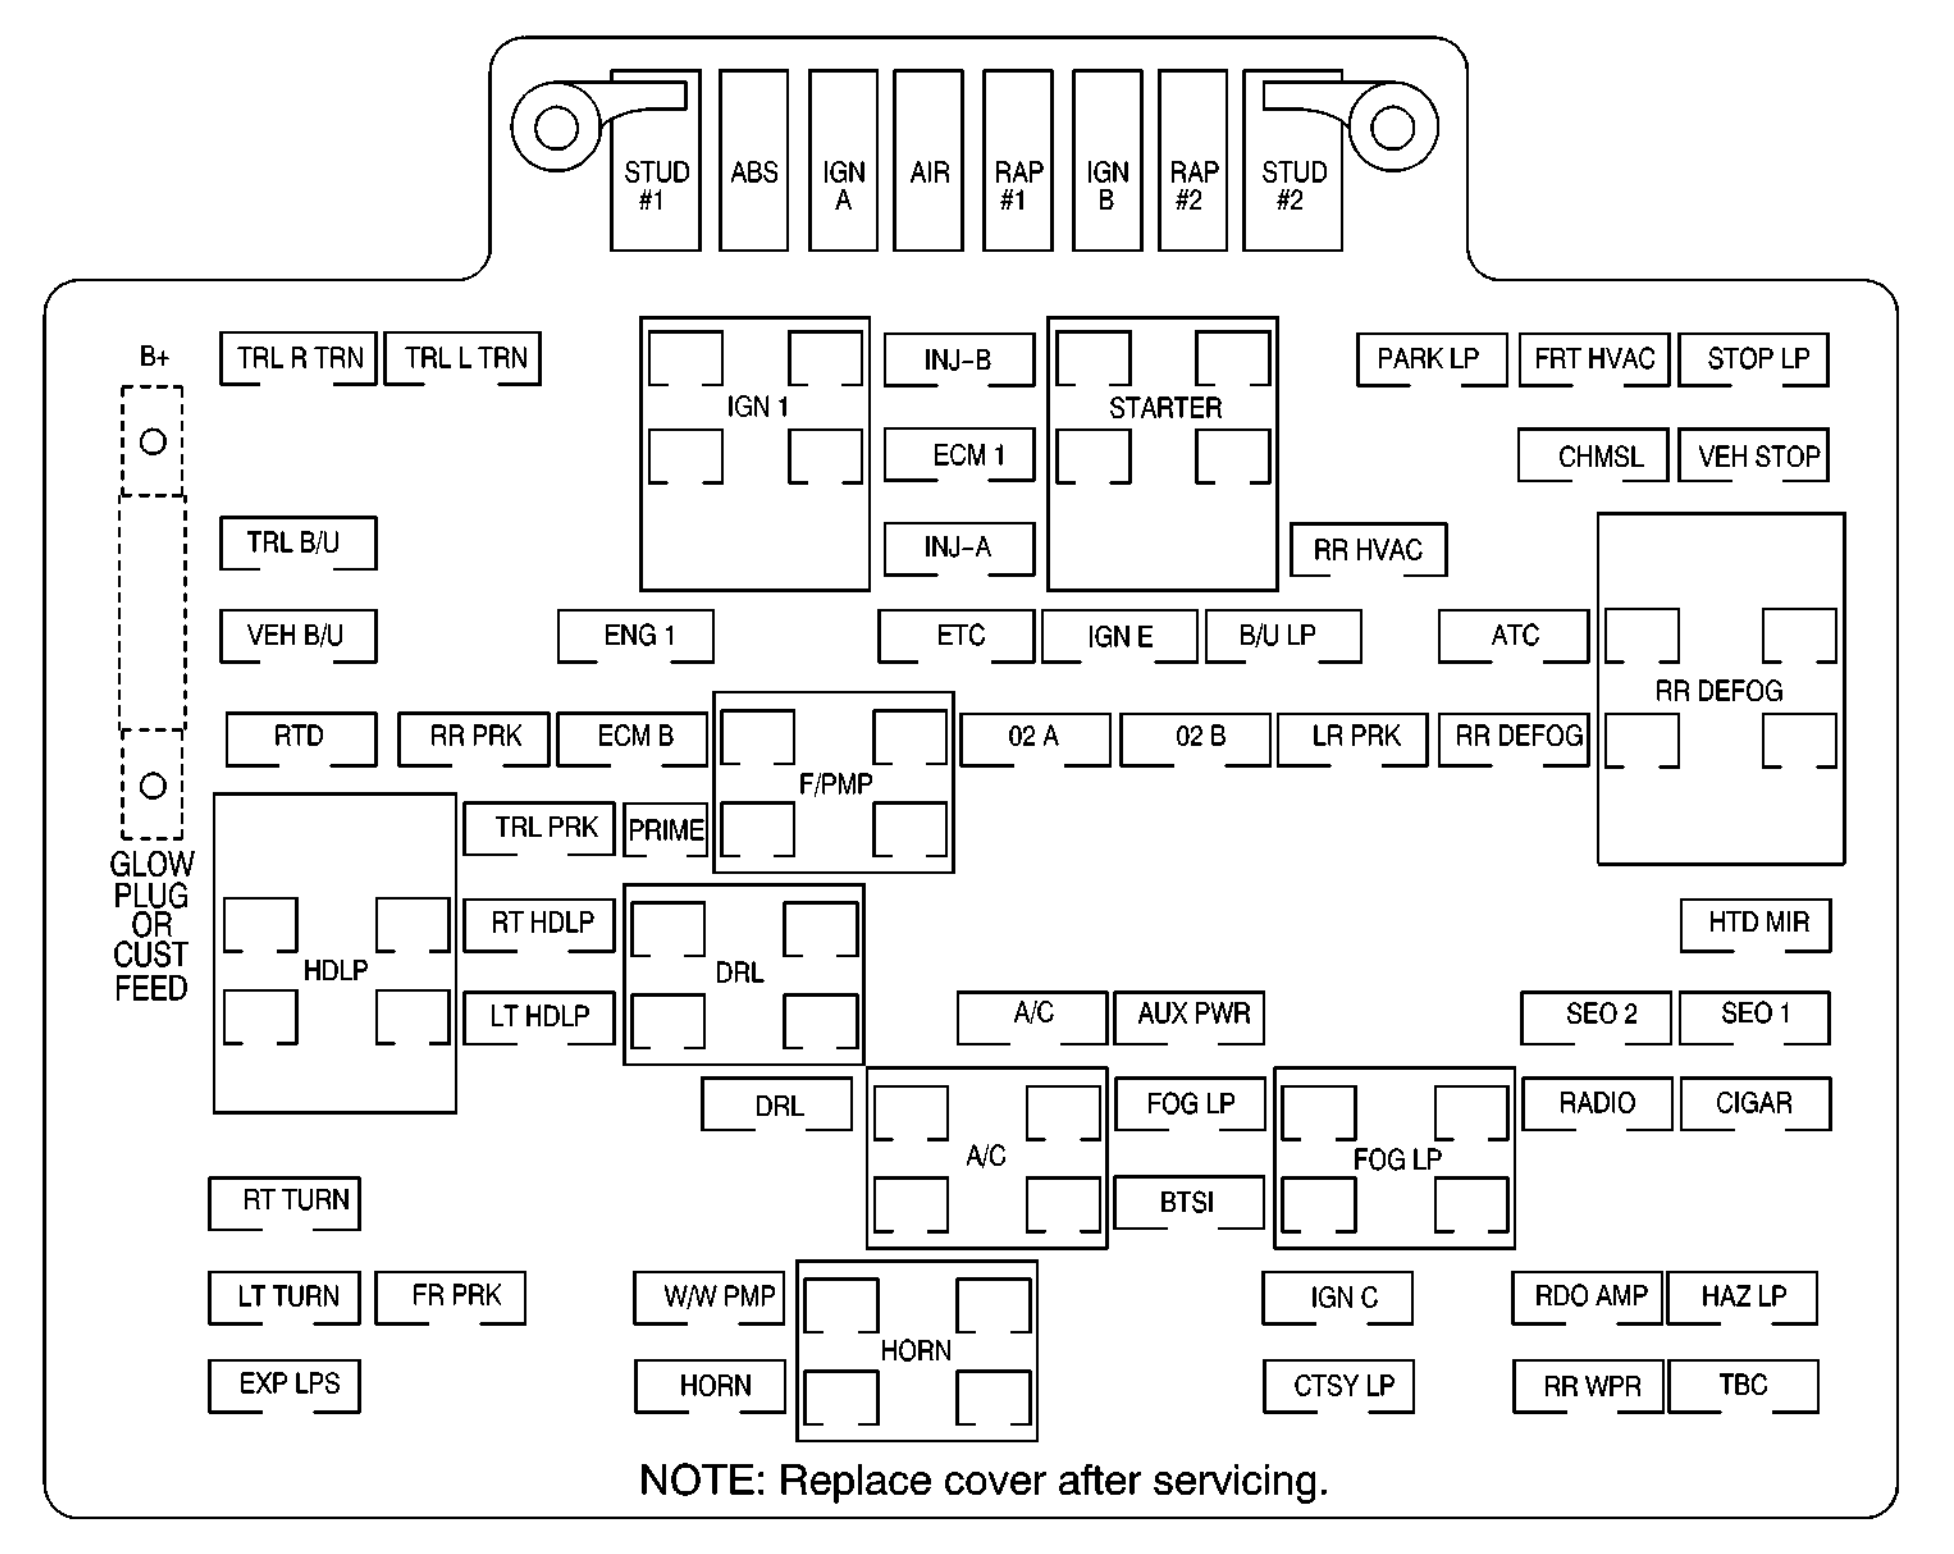 2001 Tahoe Fuse Box Wiring Diagram Essig 2002 Mitsubishi Lancer Chevrolet Schema Diagrams Chevy Panel